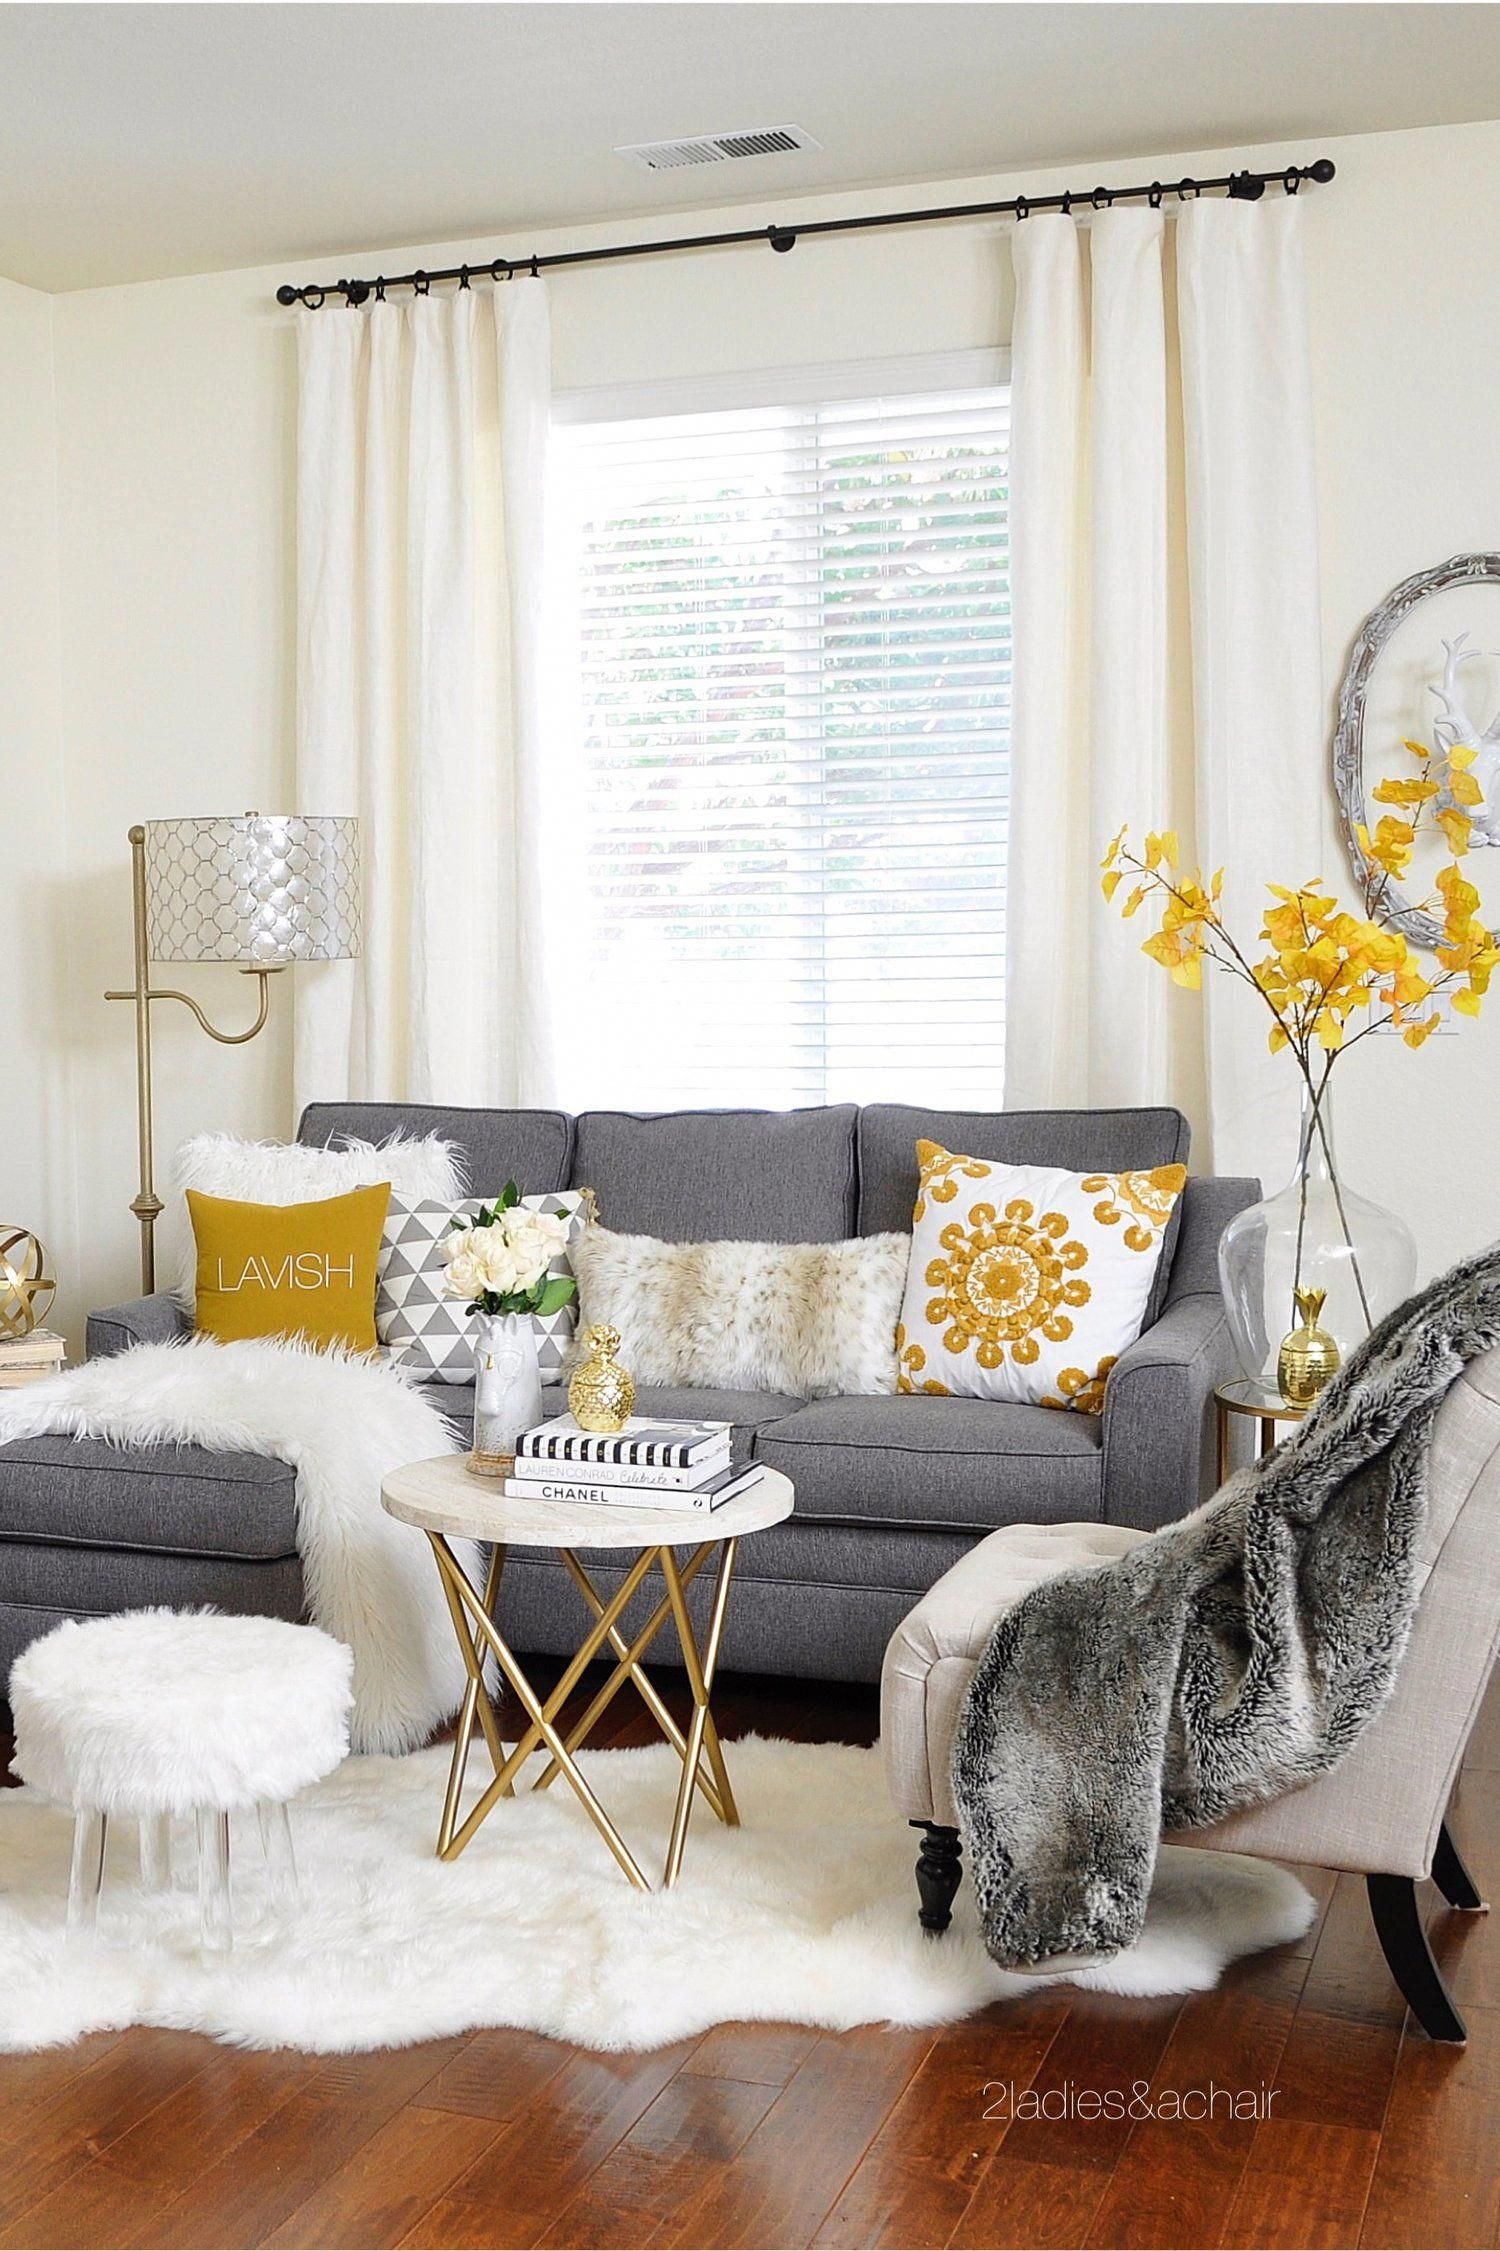 23+ Gray and yellow living room decor ideas in 2021